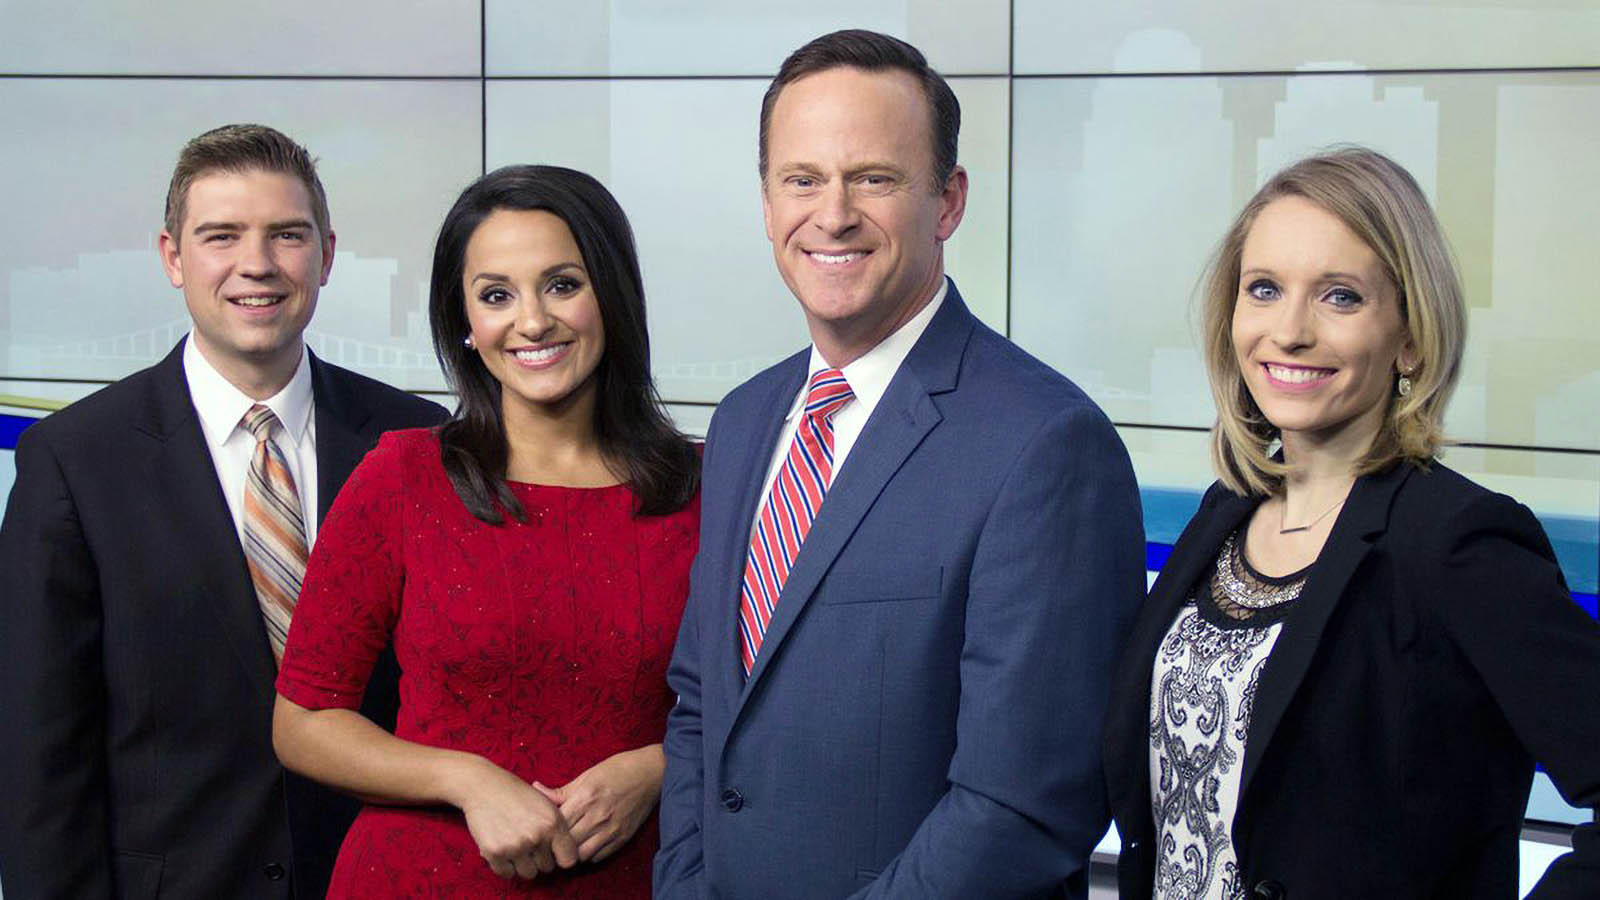 Most watched team of WTVG 13abc